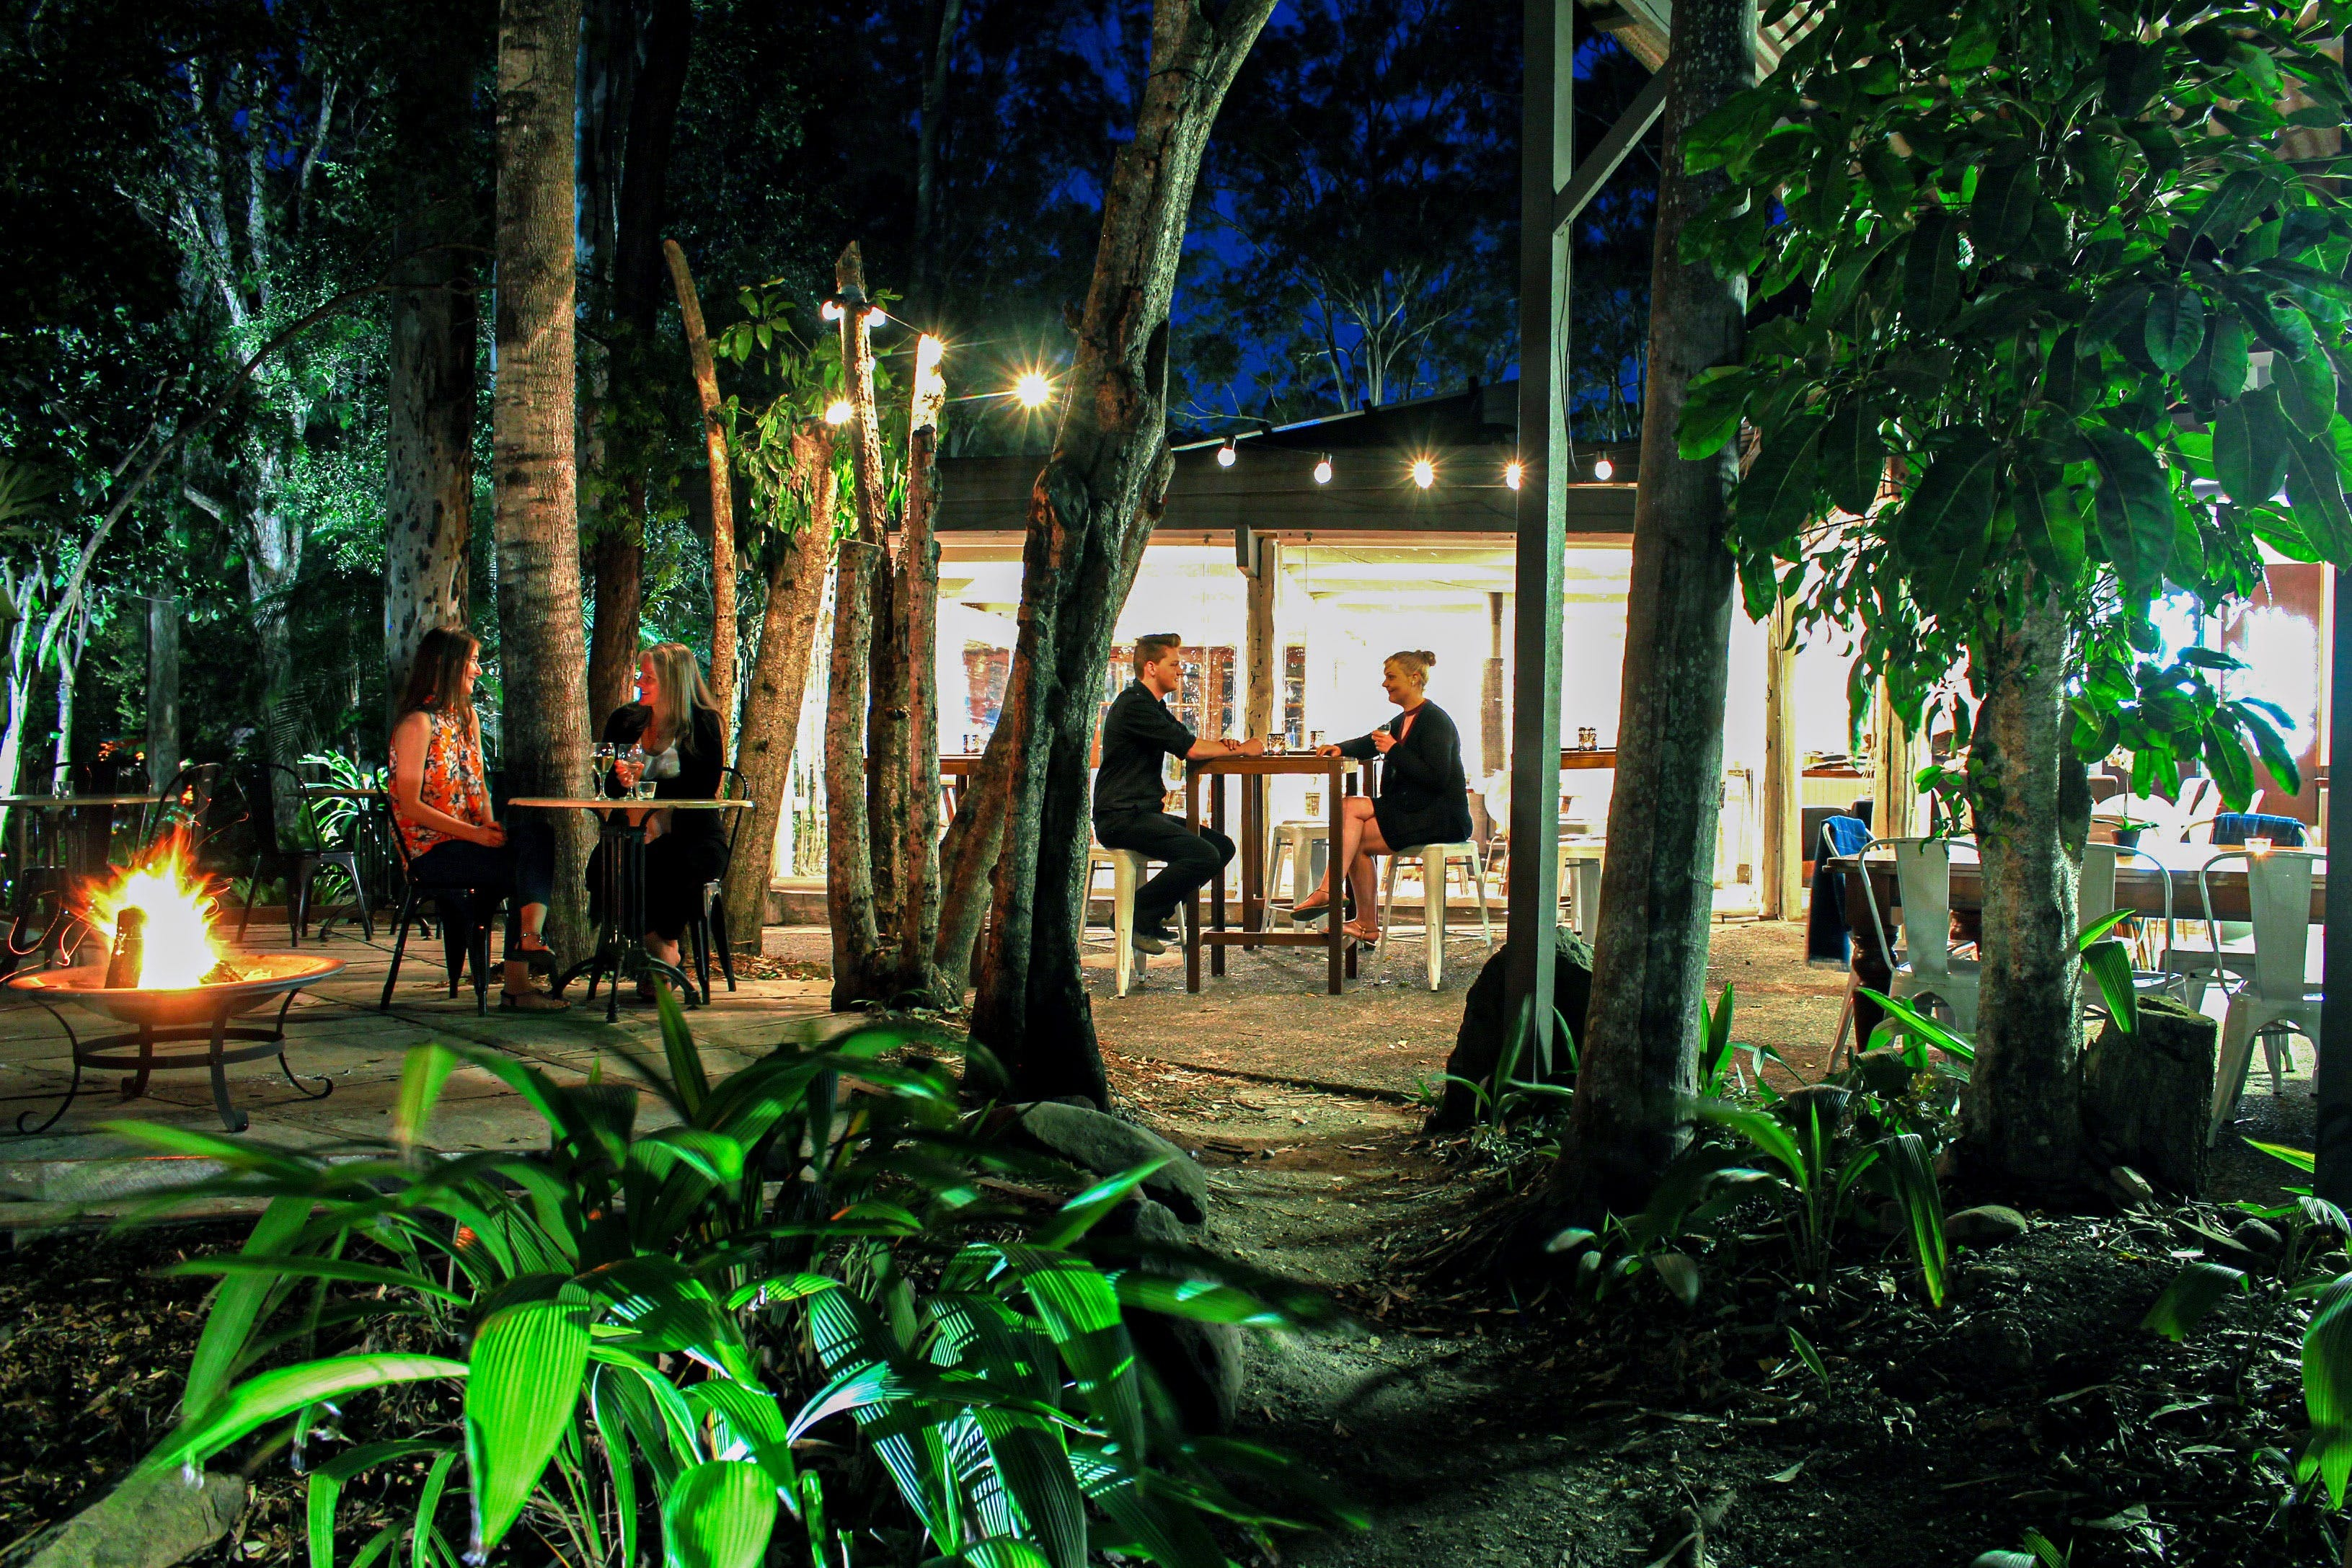 Rainforest Restaurant and Lounge Bar - Accommodation in Surfers Paradise